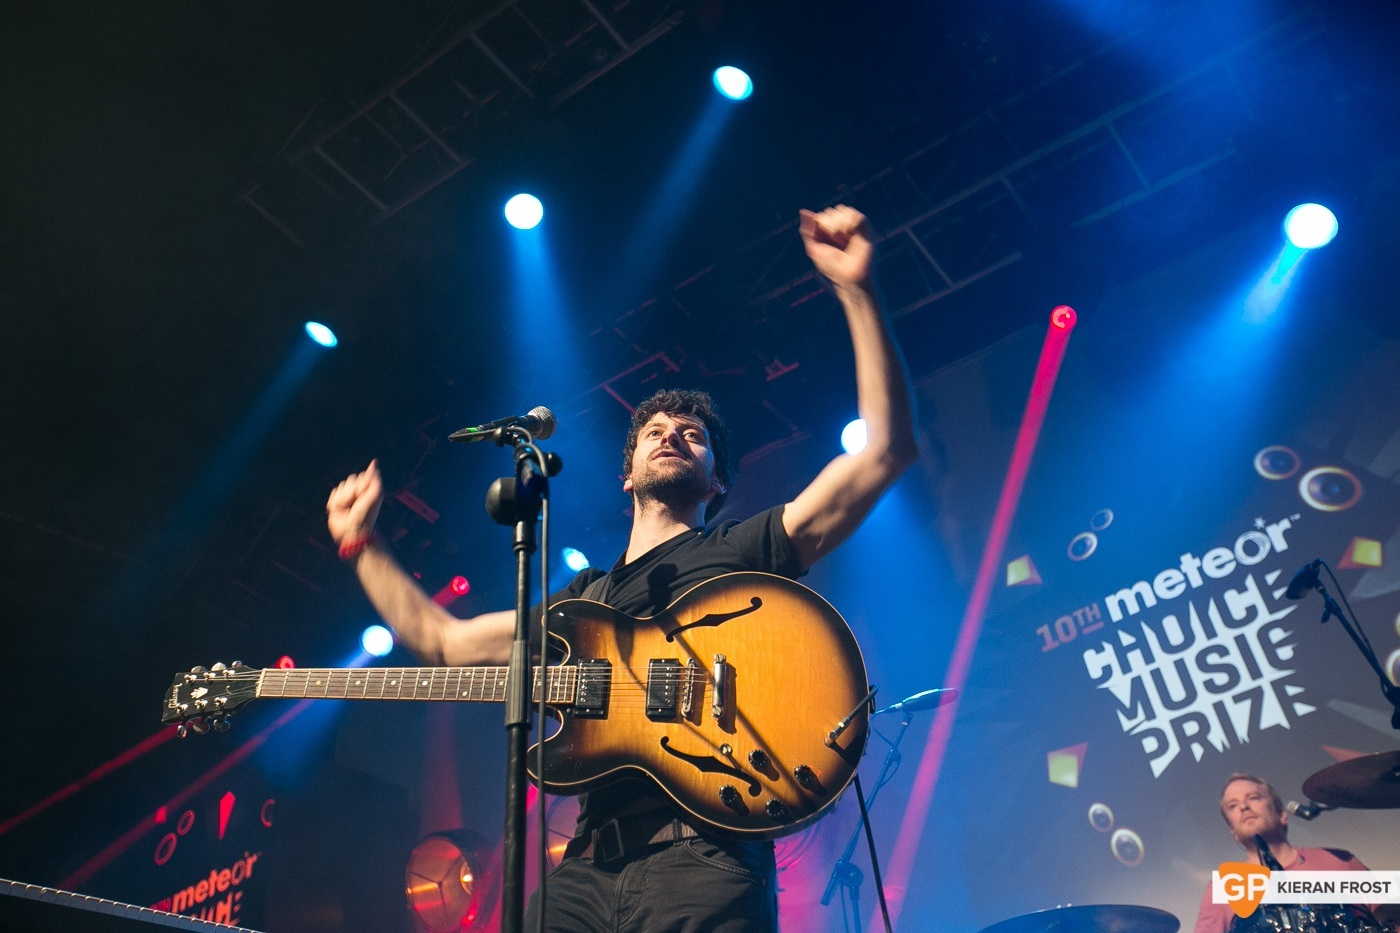 Delorentos at Meteor Choice Music Prize 2015 by Kieran Frost